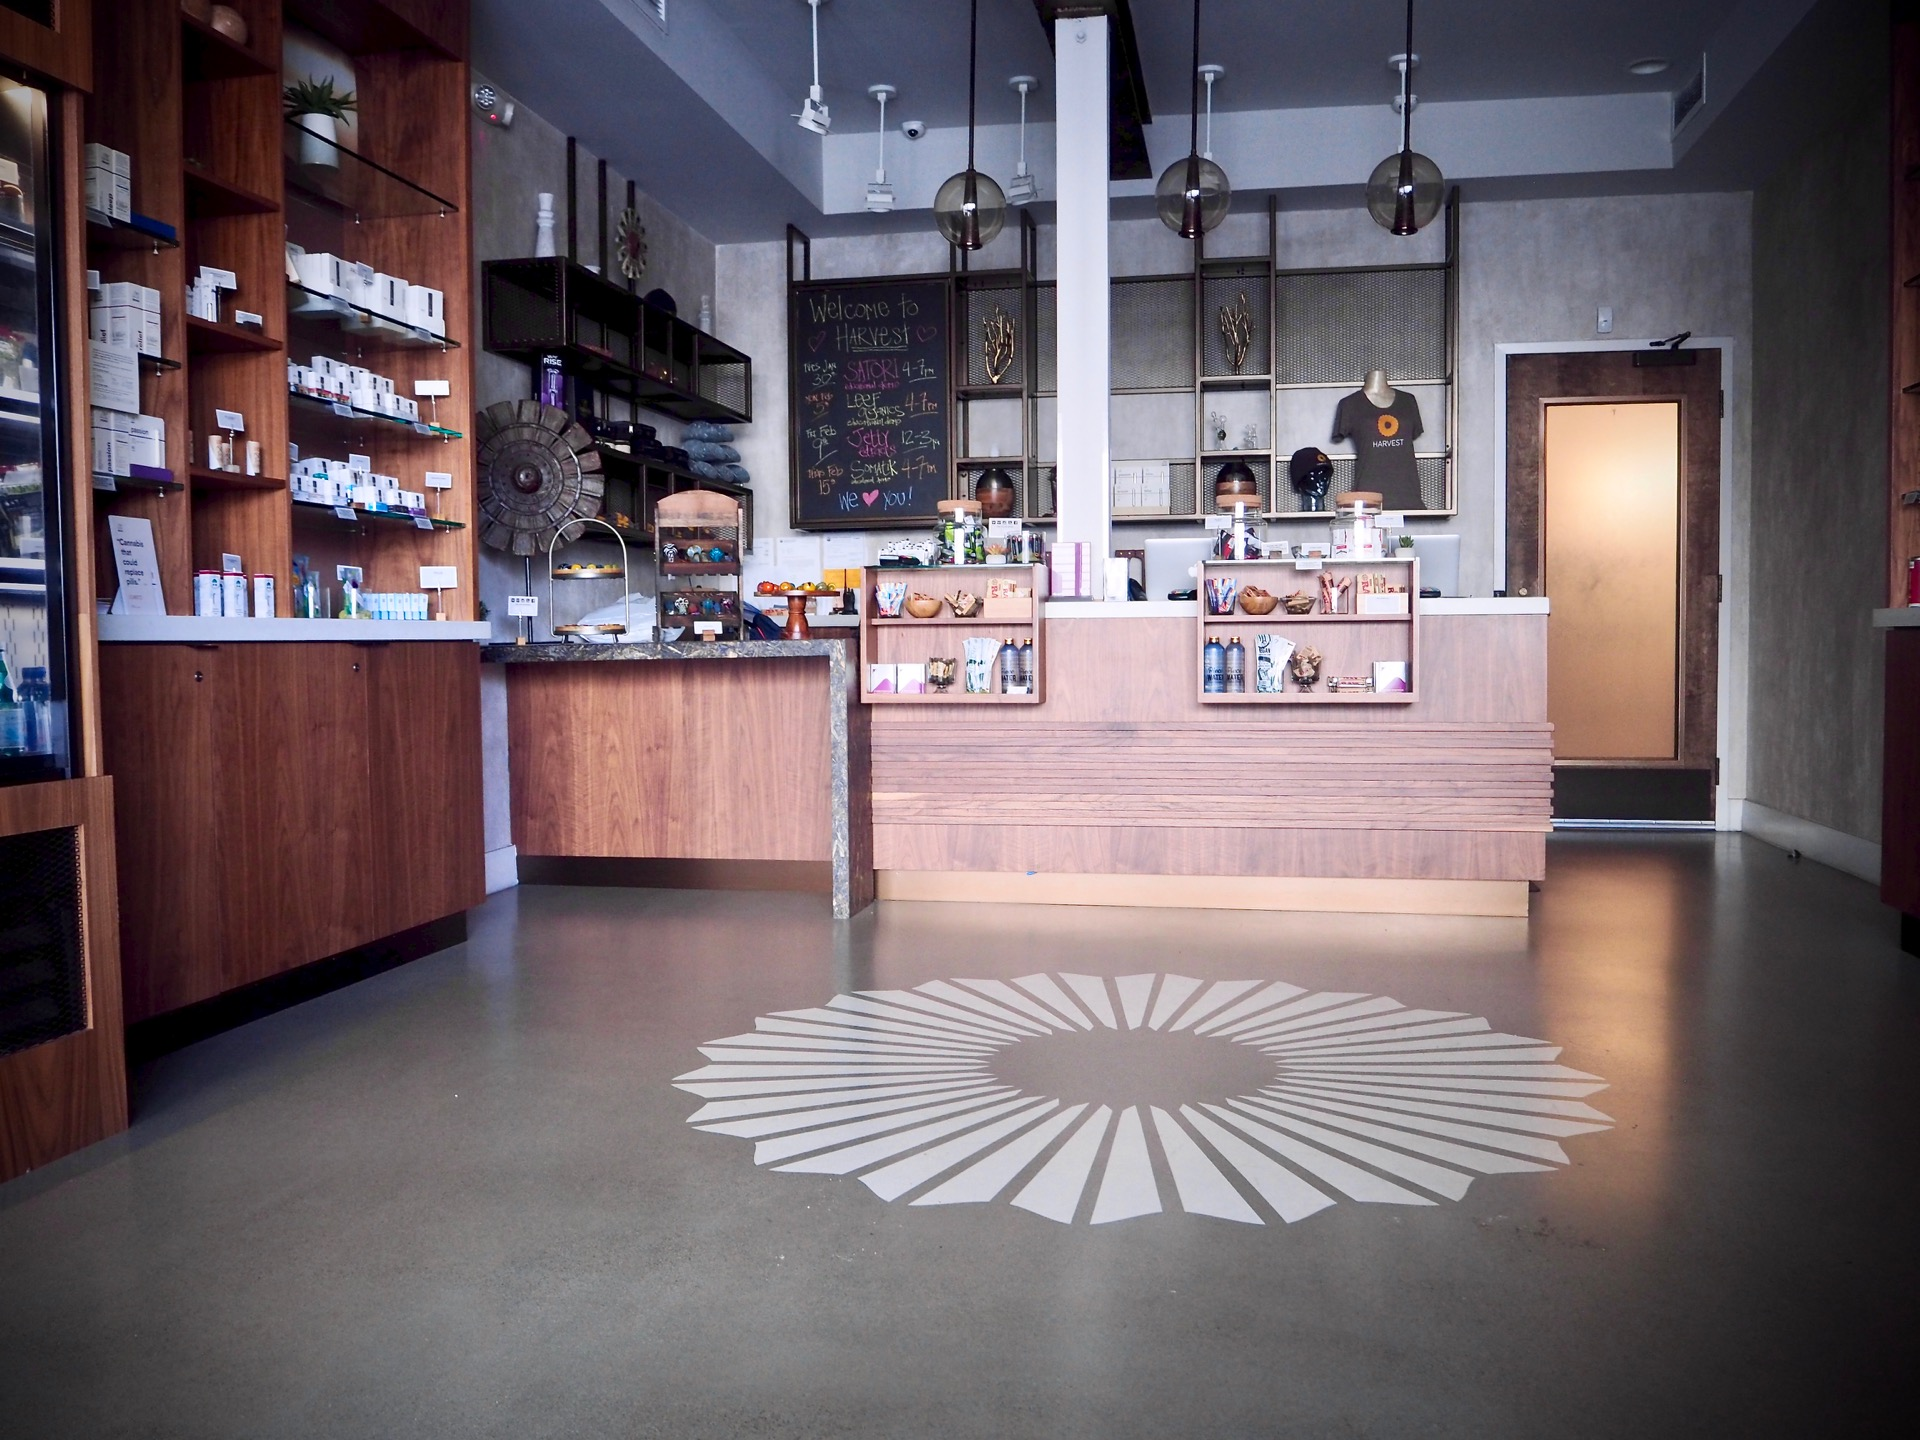 Harvest-Off-Mission-San-Francisco-Cannabis-Dispensary-Interior-Left-Side-3.jpg